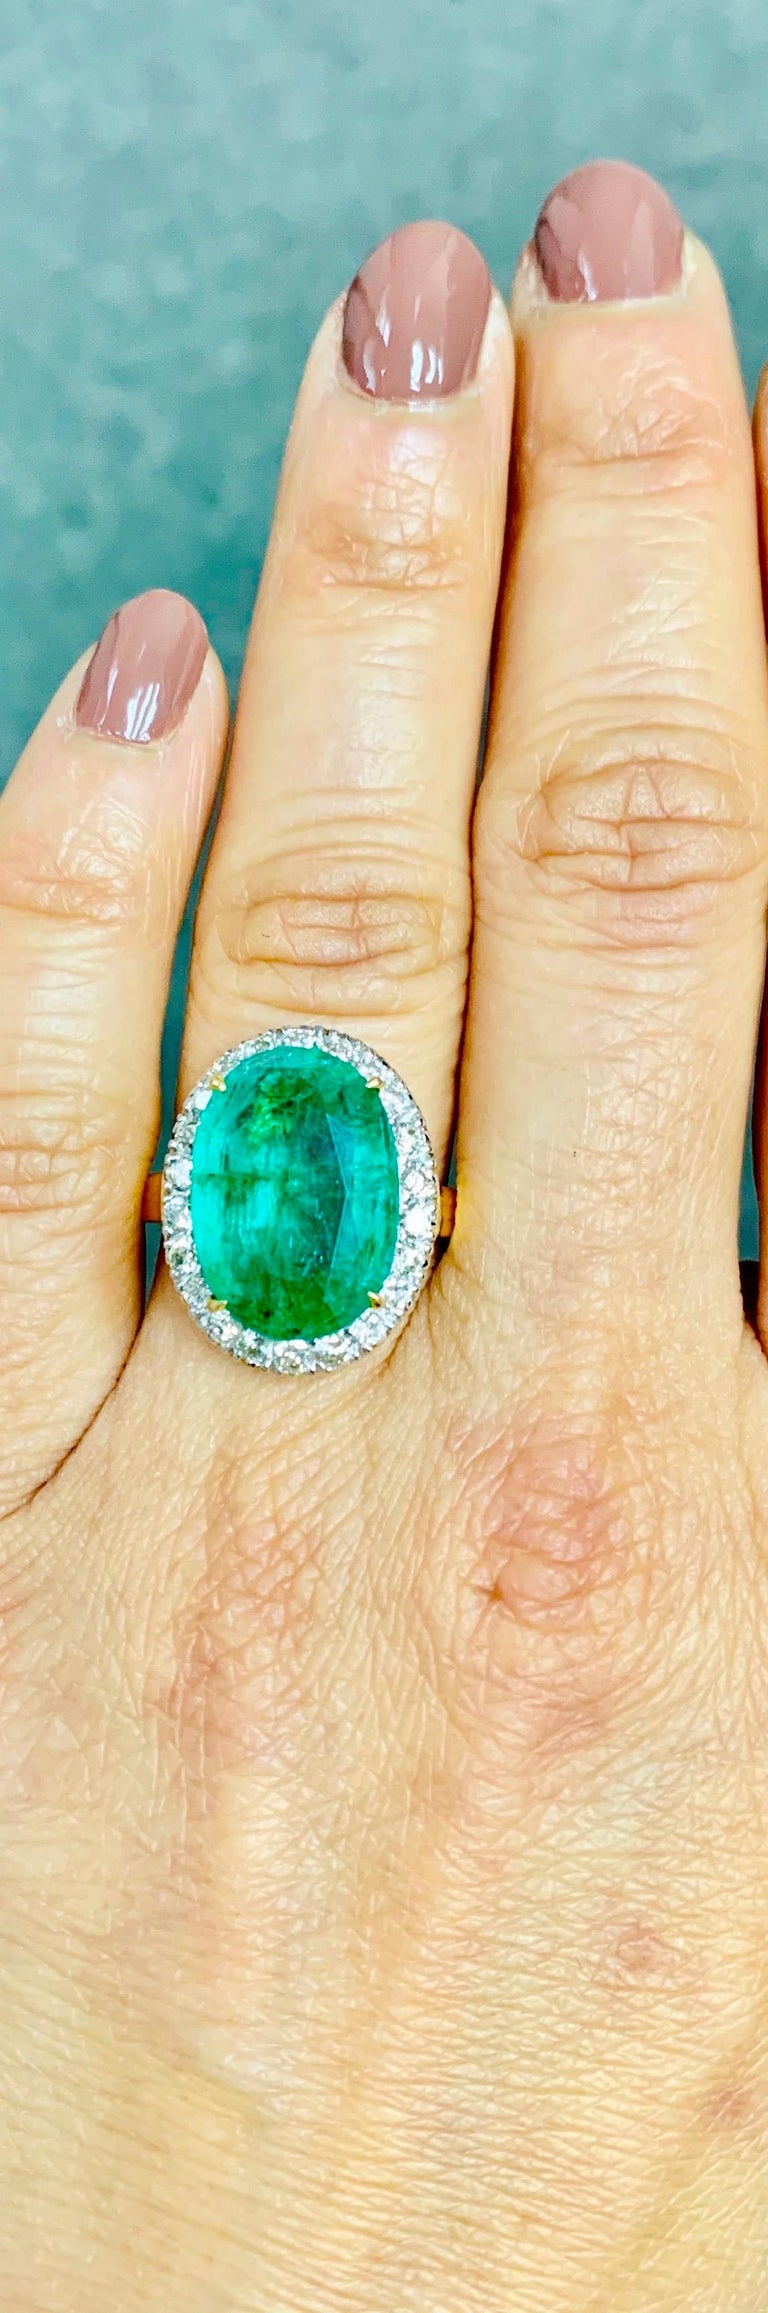 Women's Emerald and Diamond Ring in 18 Karat Yellow Gold For Sale